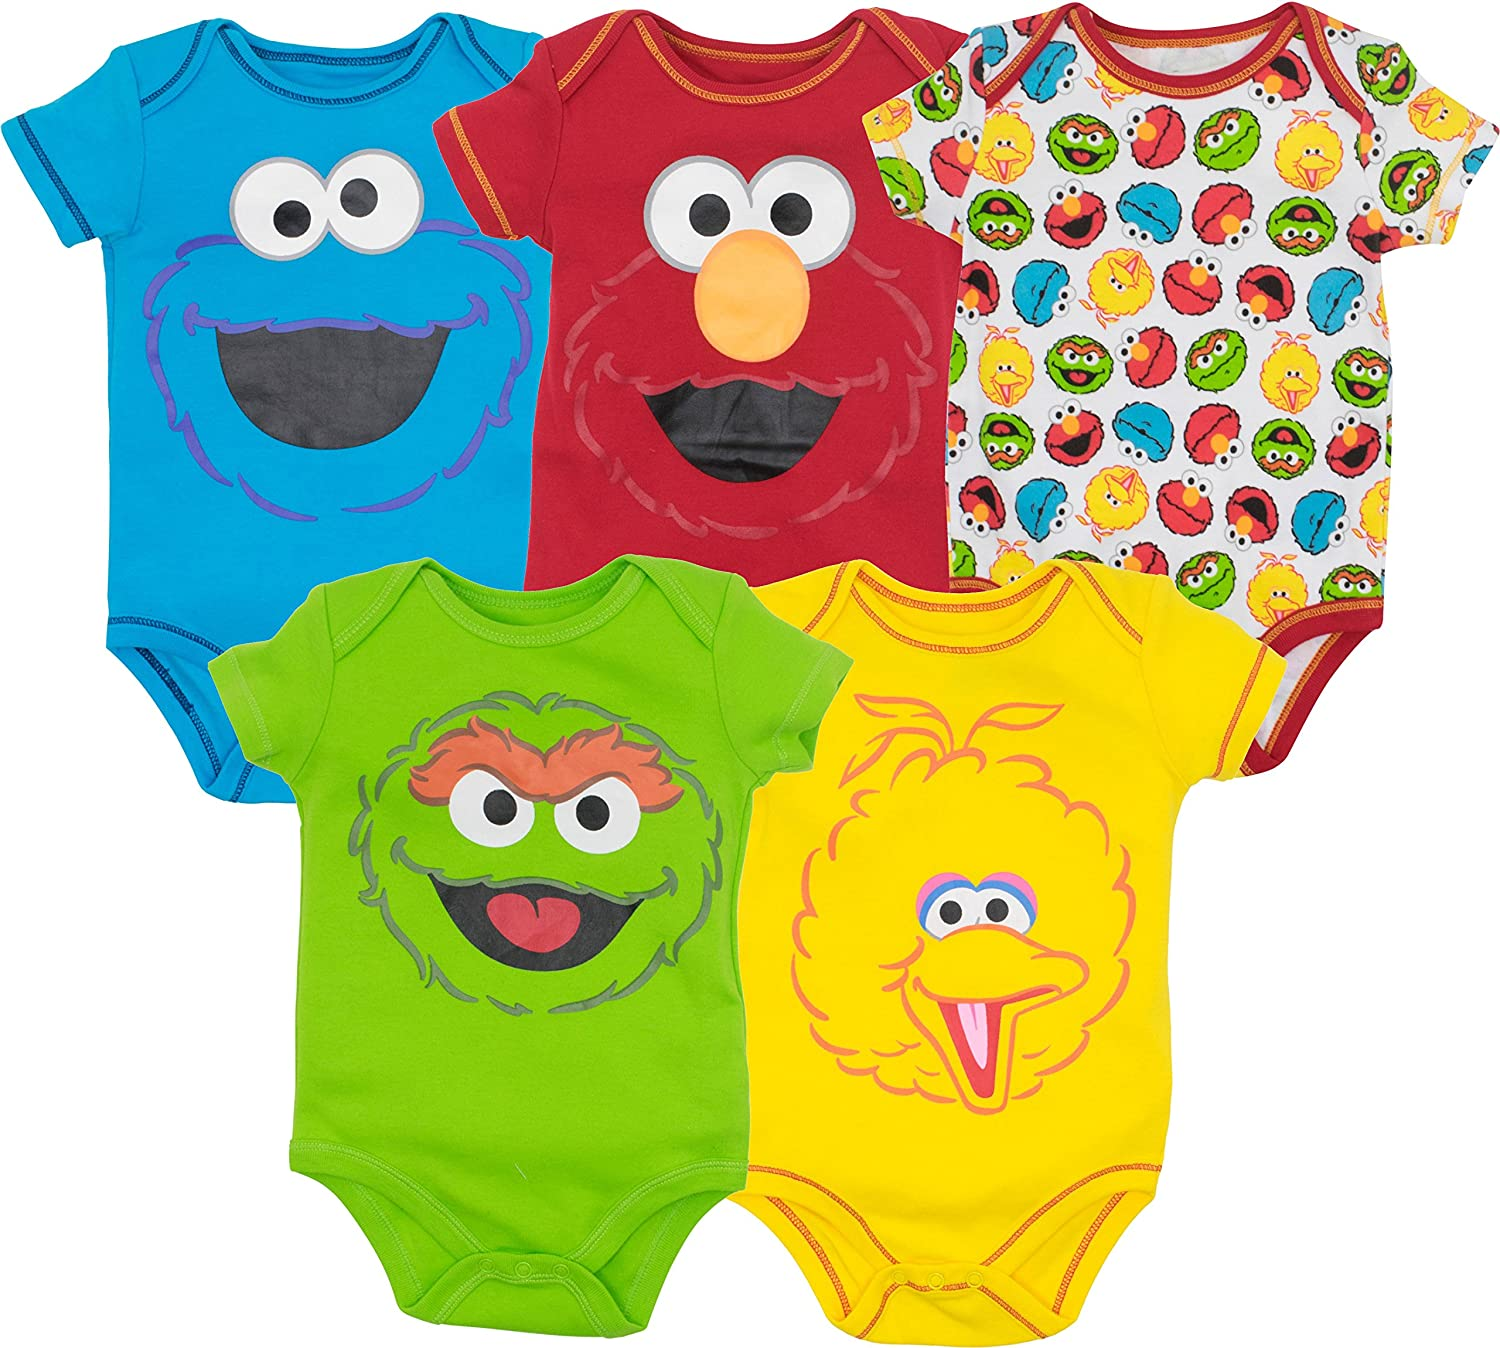 a2b0b7fc Brightly colored Sesame Street creepers featuring red Elmo, blue Cookie  Monster, green Oscar the Grouch, yellow Big Bird and an all-over print with  all four